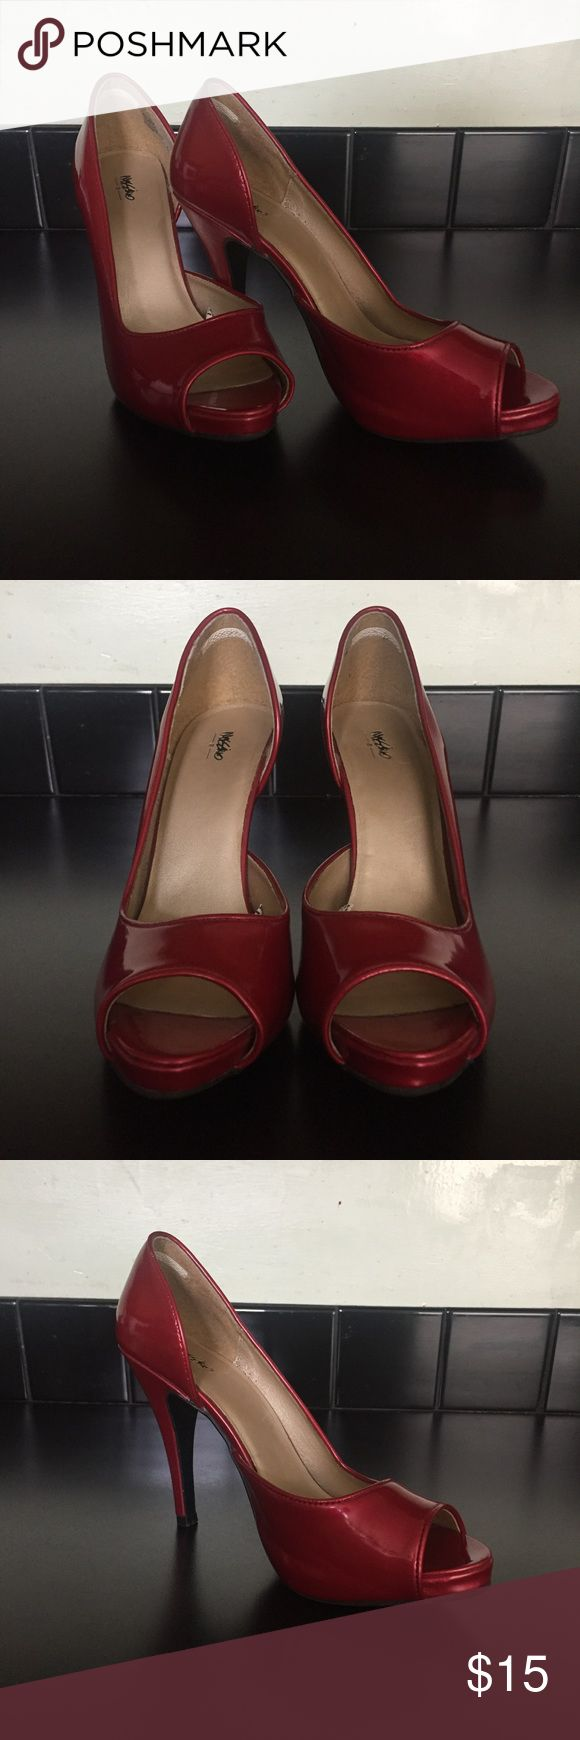 """Super cute red heels! Size 9.5 red peep toe heels! Super cute. Would be great for the upcoming holiday season. Approx. 4"""" heel. Comfortable, too!! Like new. Only worn twice. Mossimo Supply Co Shoes Heels"""